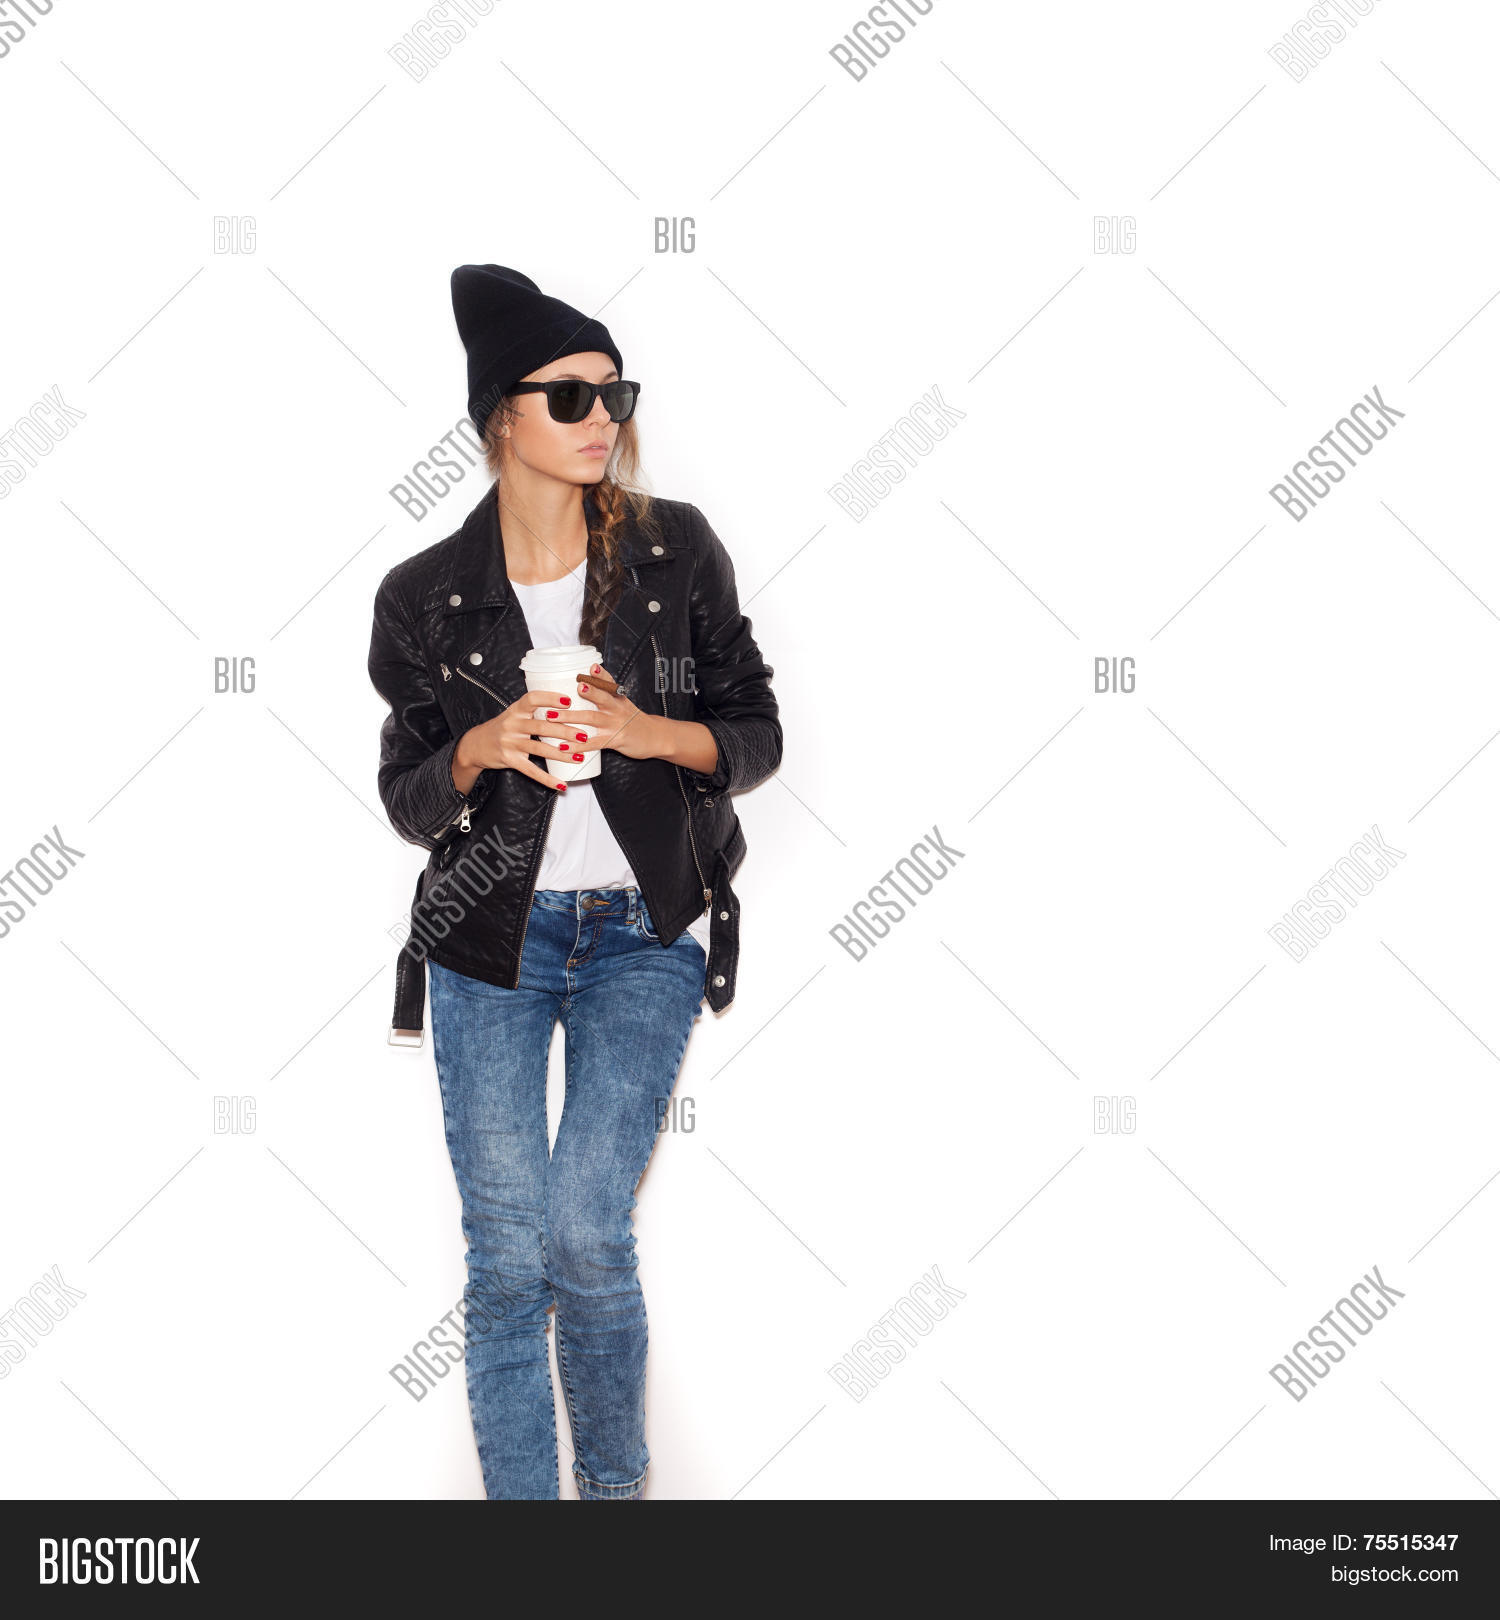 8ce0c137bbe Hipster Girl In Sunglasses And Black Beanie Smoking Cigar